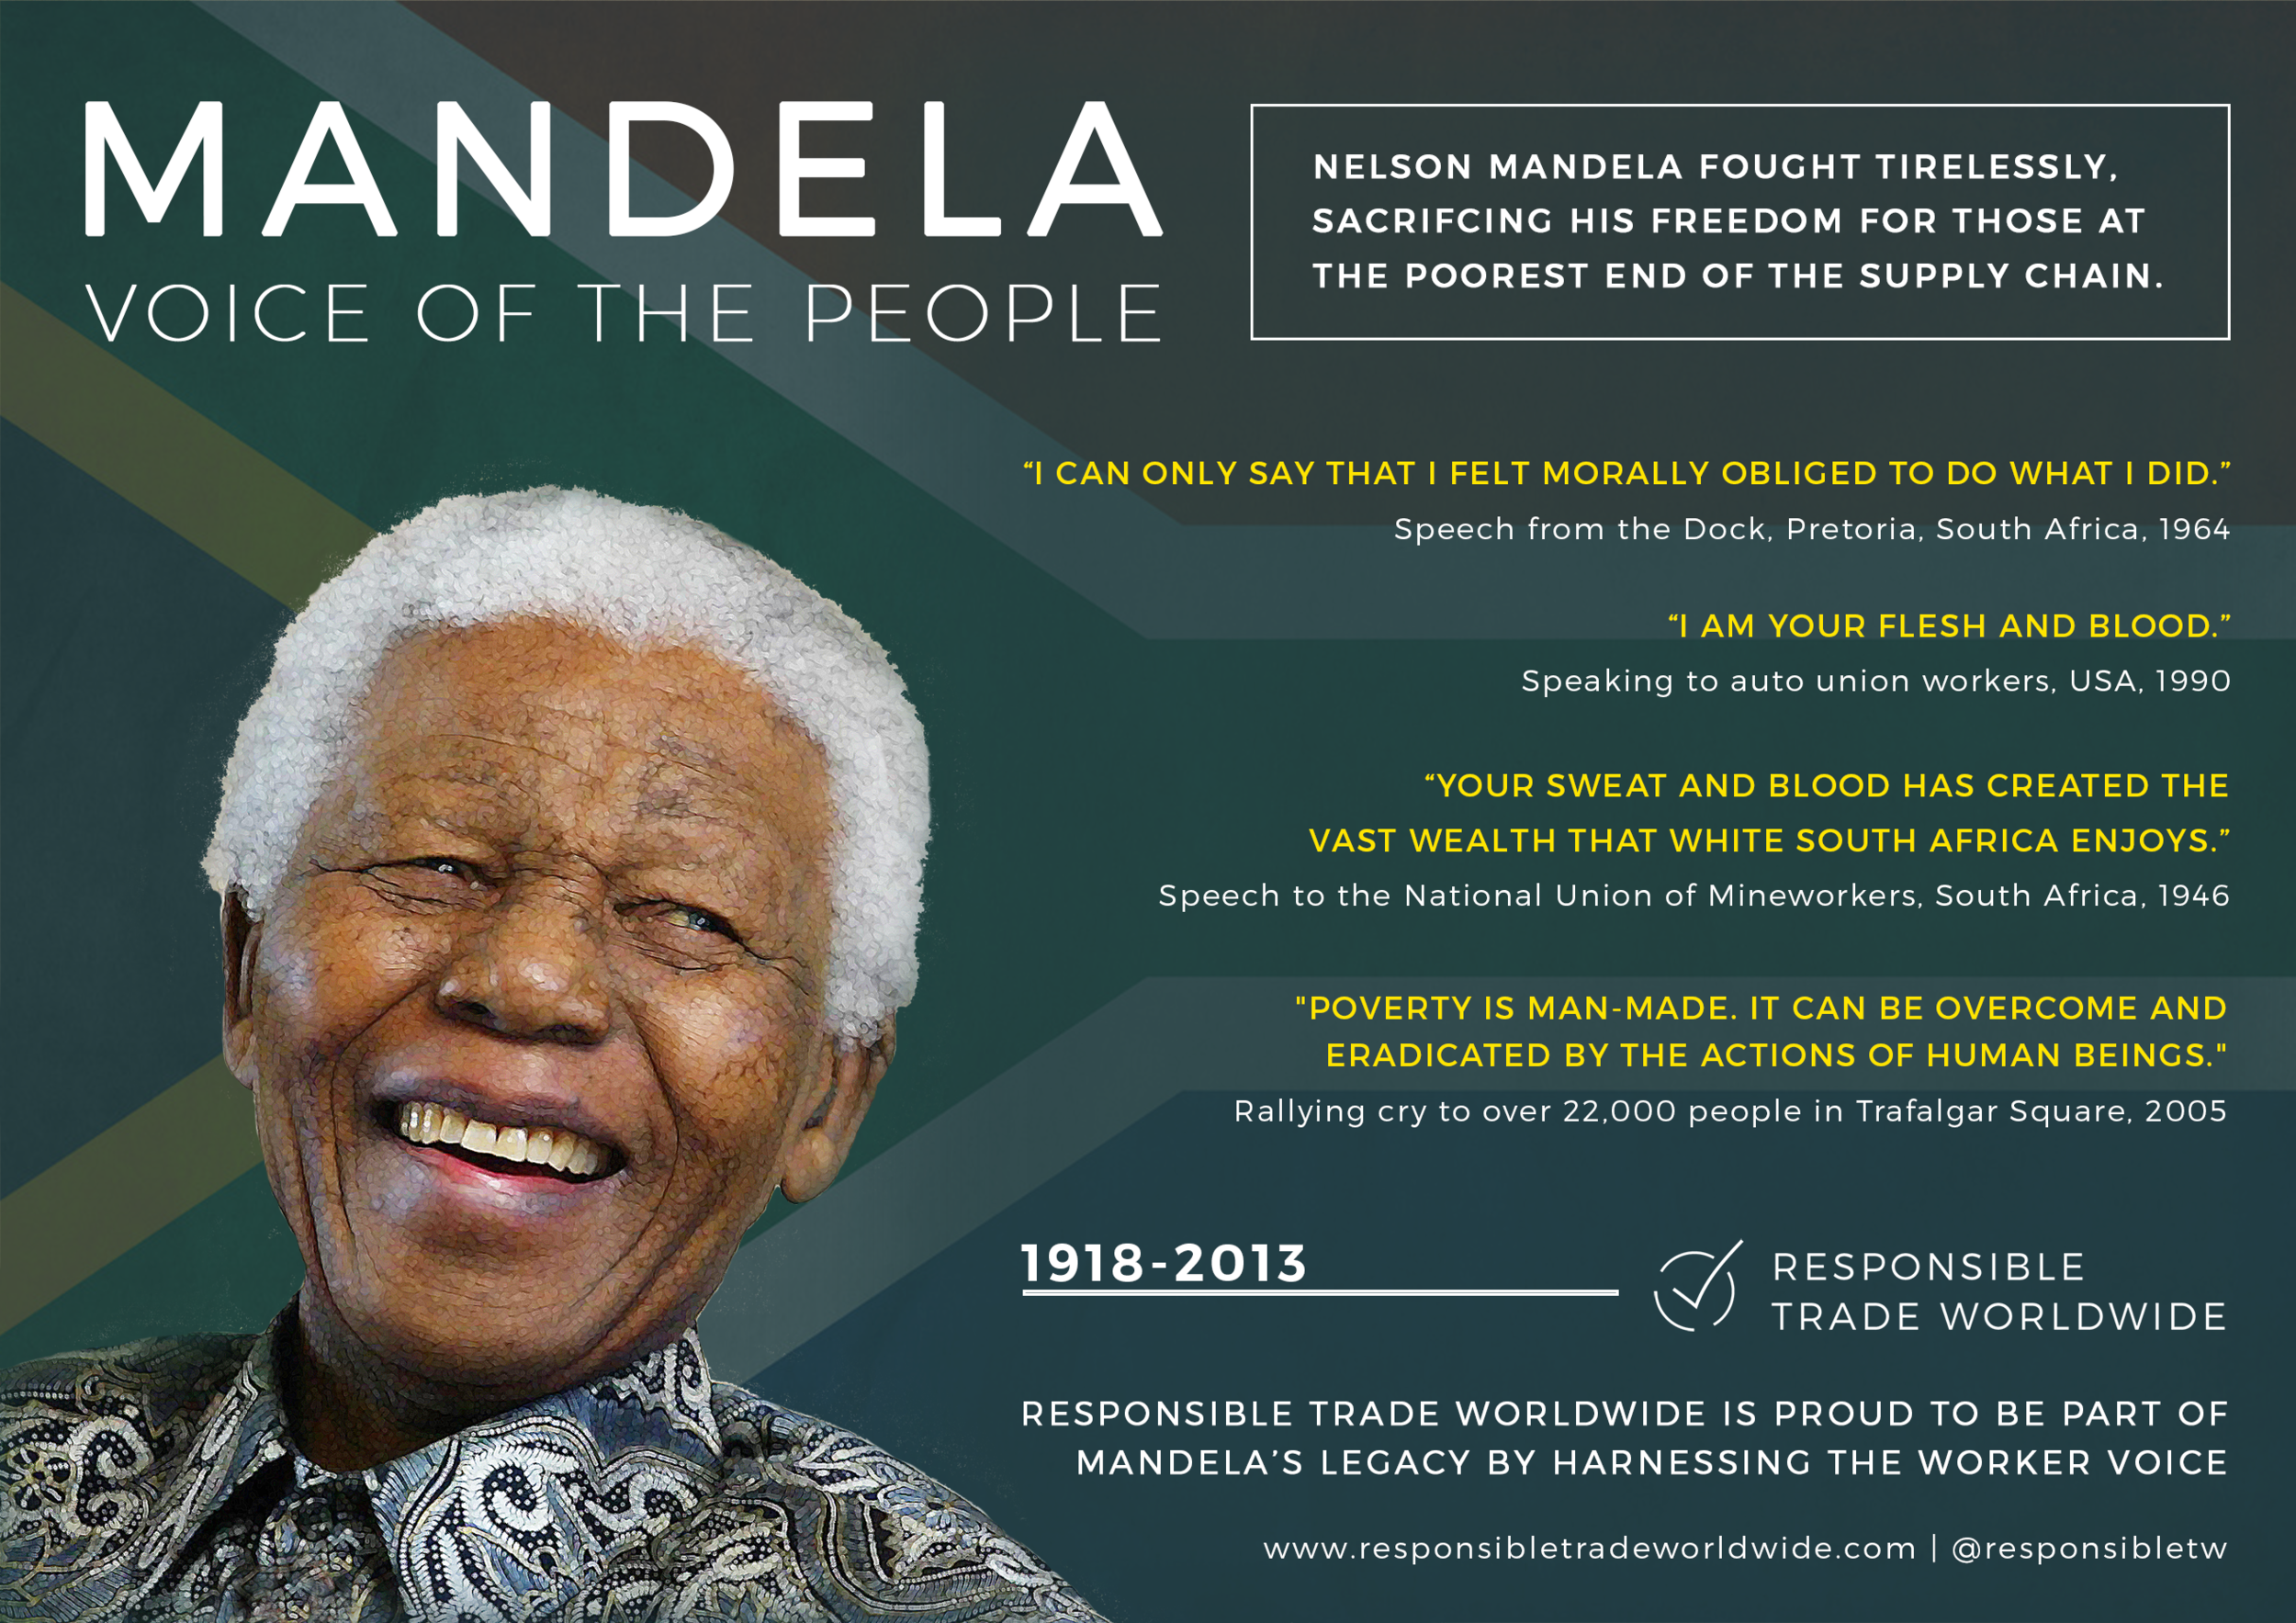 RTW_Mandela_2016-1-medium.png